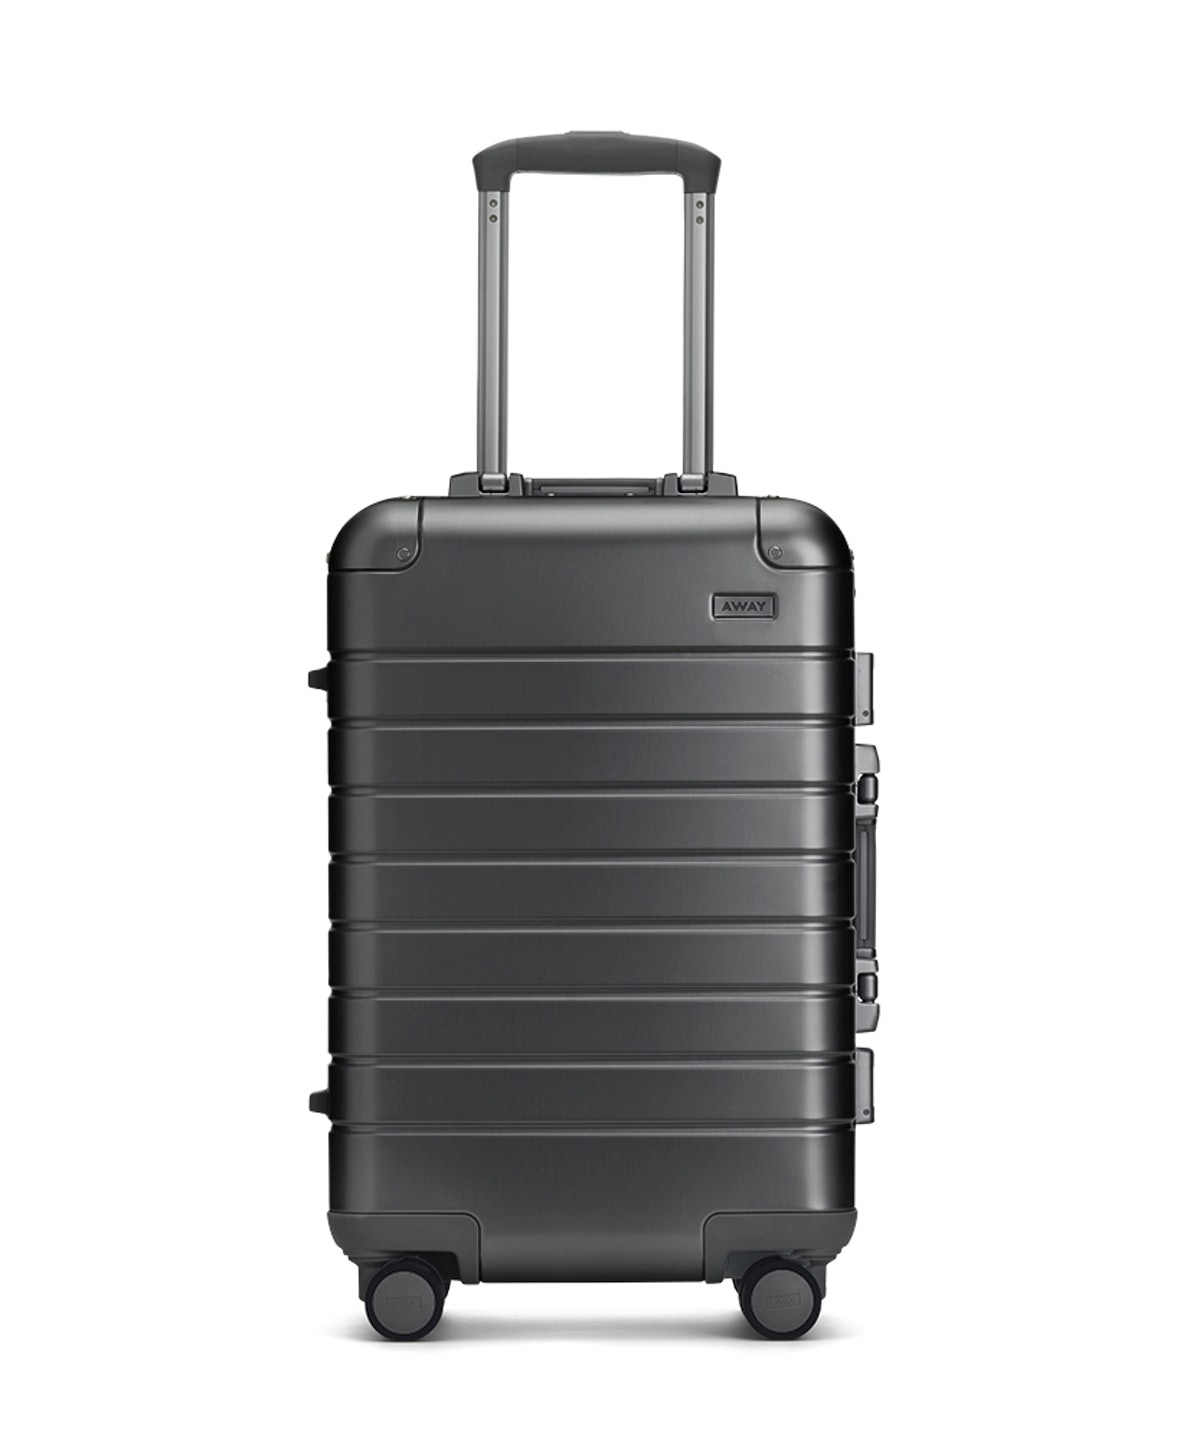 The Carry-On Aluminum Edition in Steel